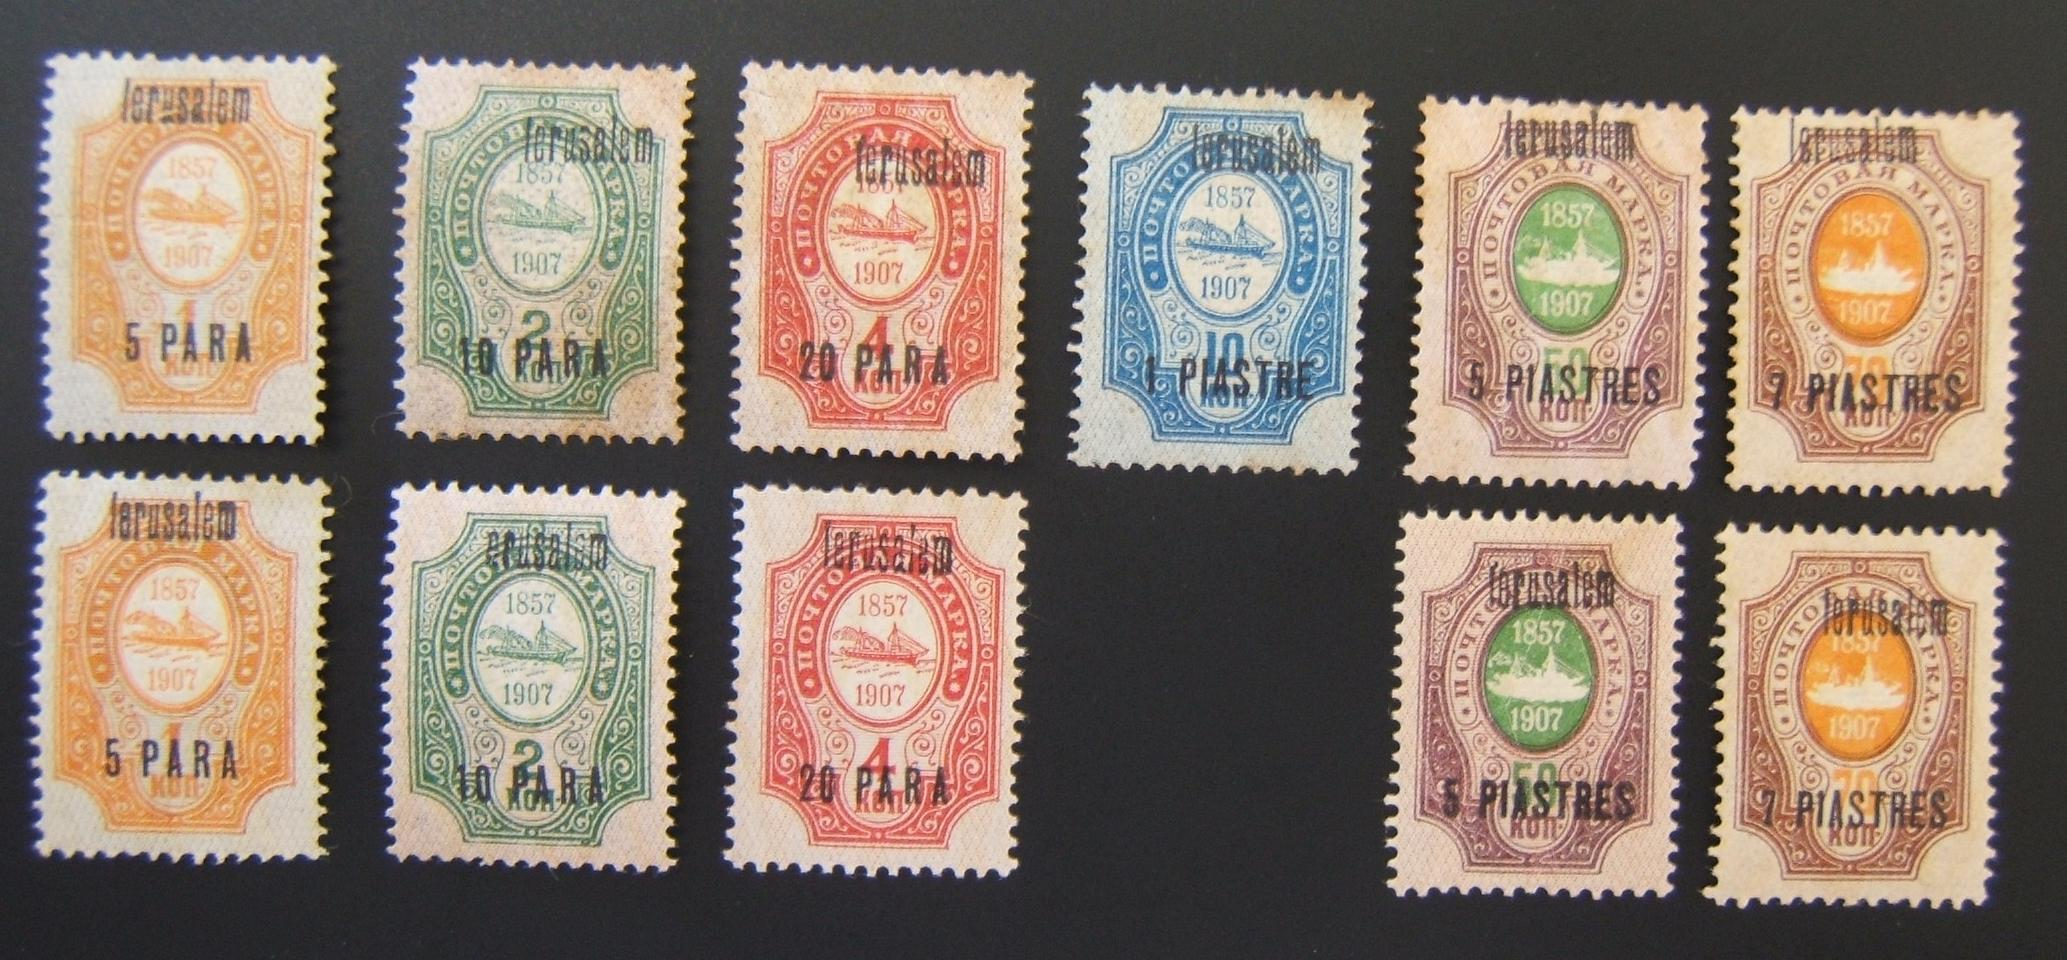 Russian Holyland post lot x11 stps 1909 ROPiT ser. ovptd